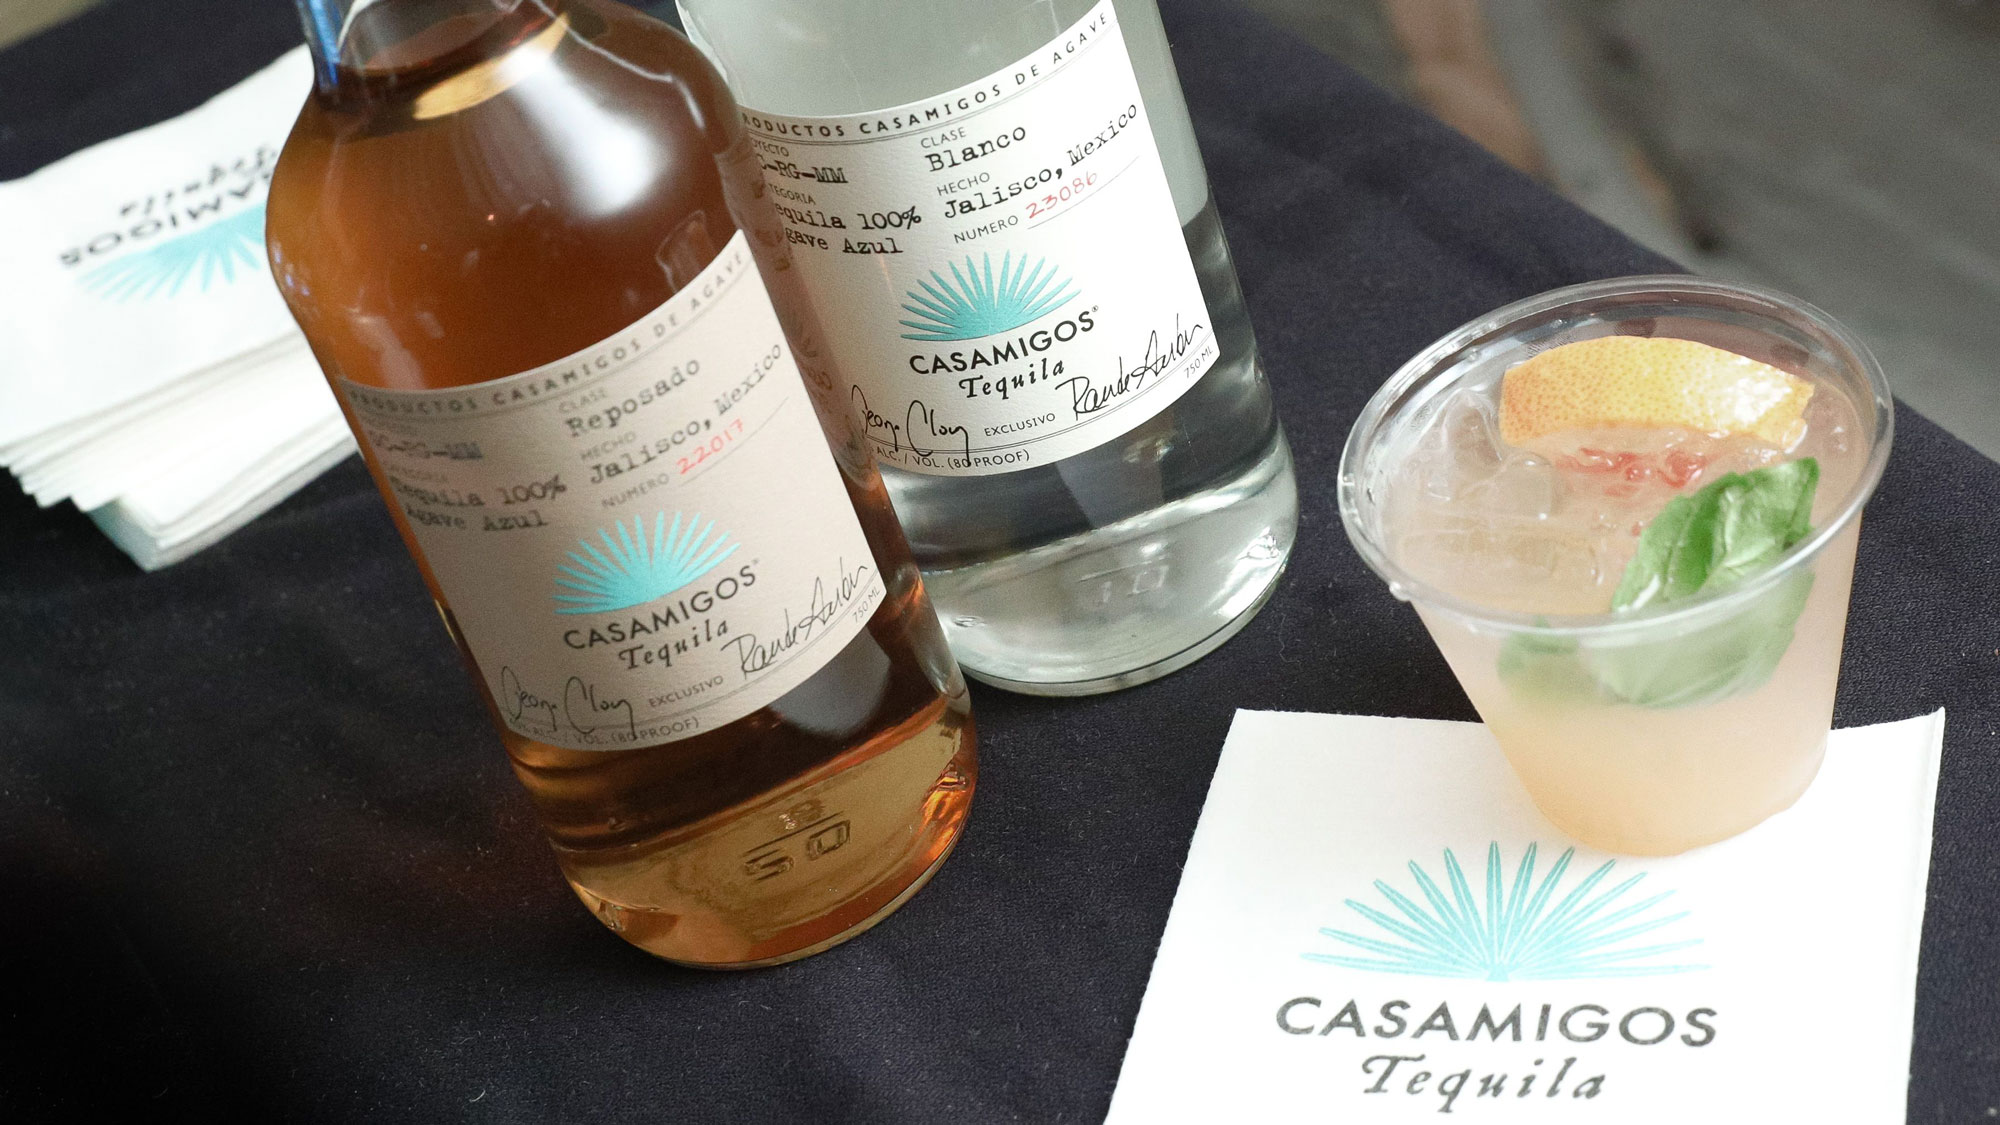 Casamigos tequila bottles and cocktail